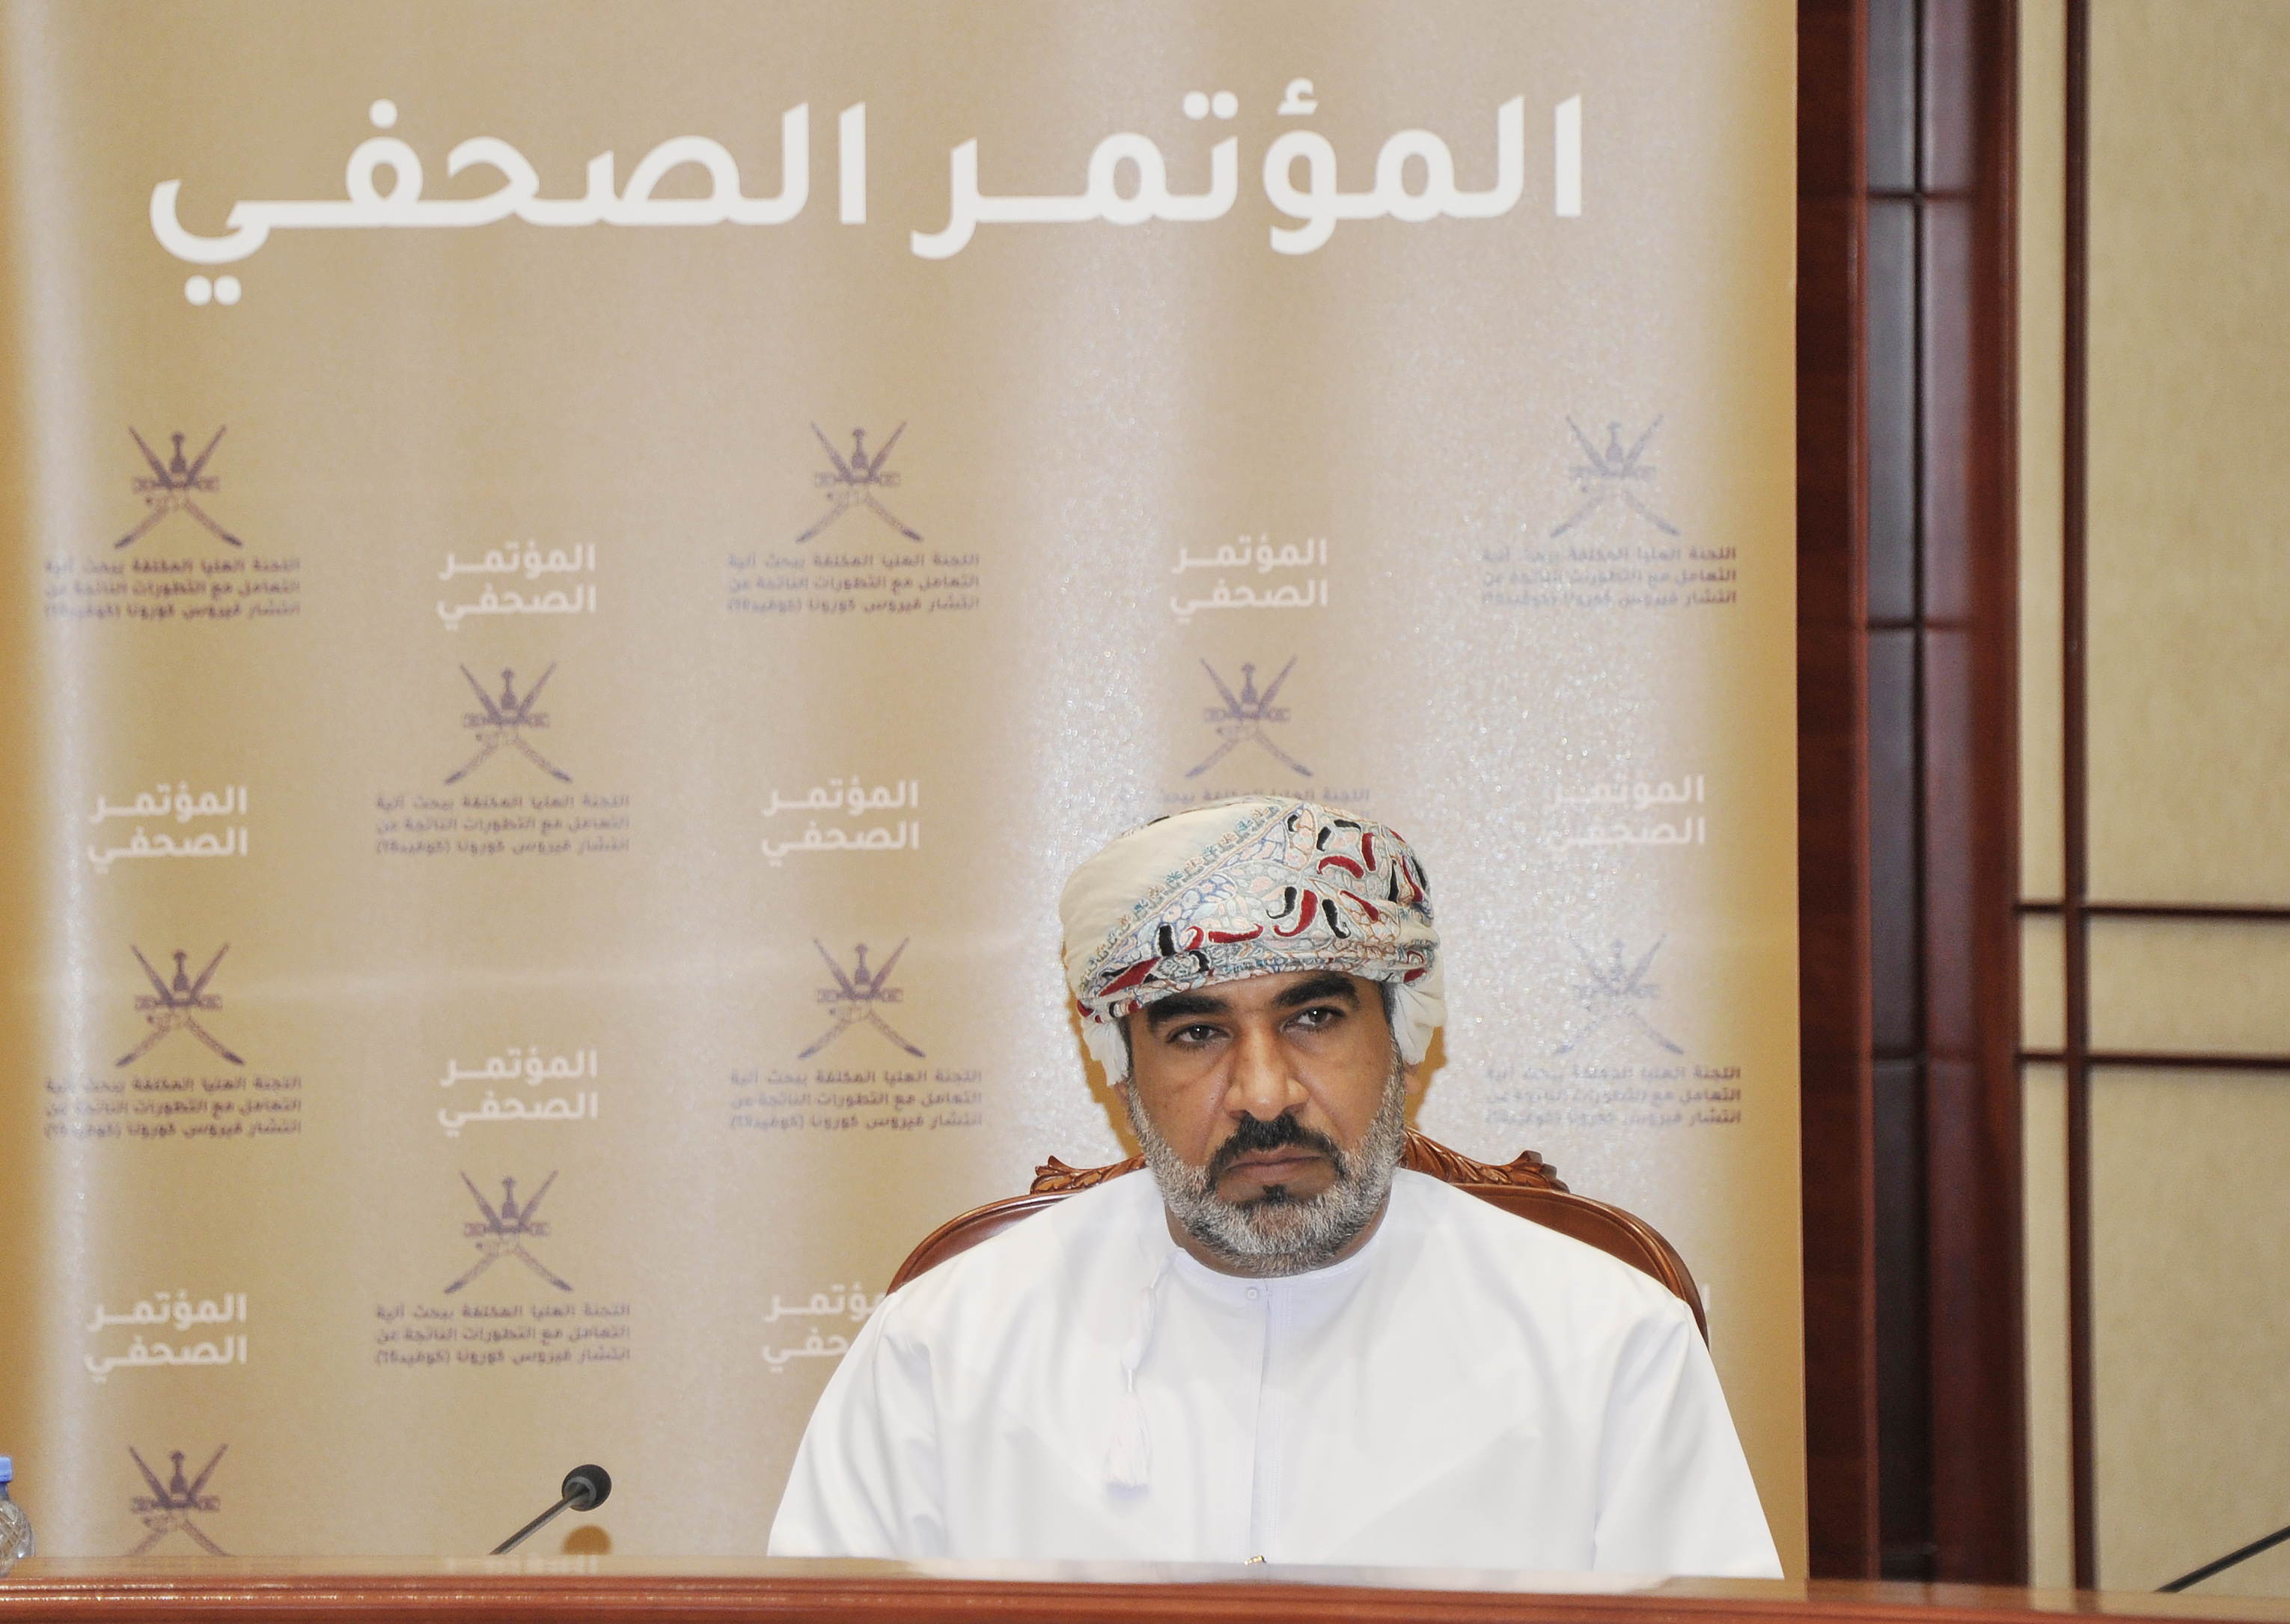 Fifth round of reopening activities in Oman likely after end of lockdown